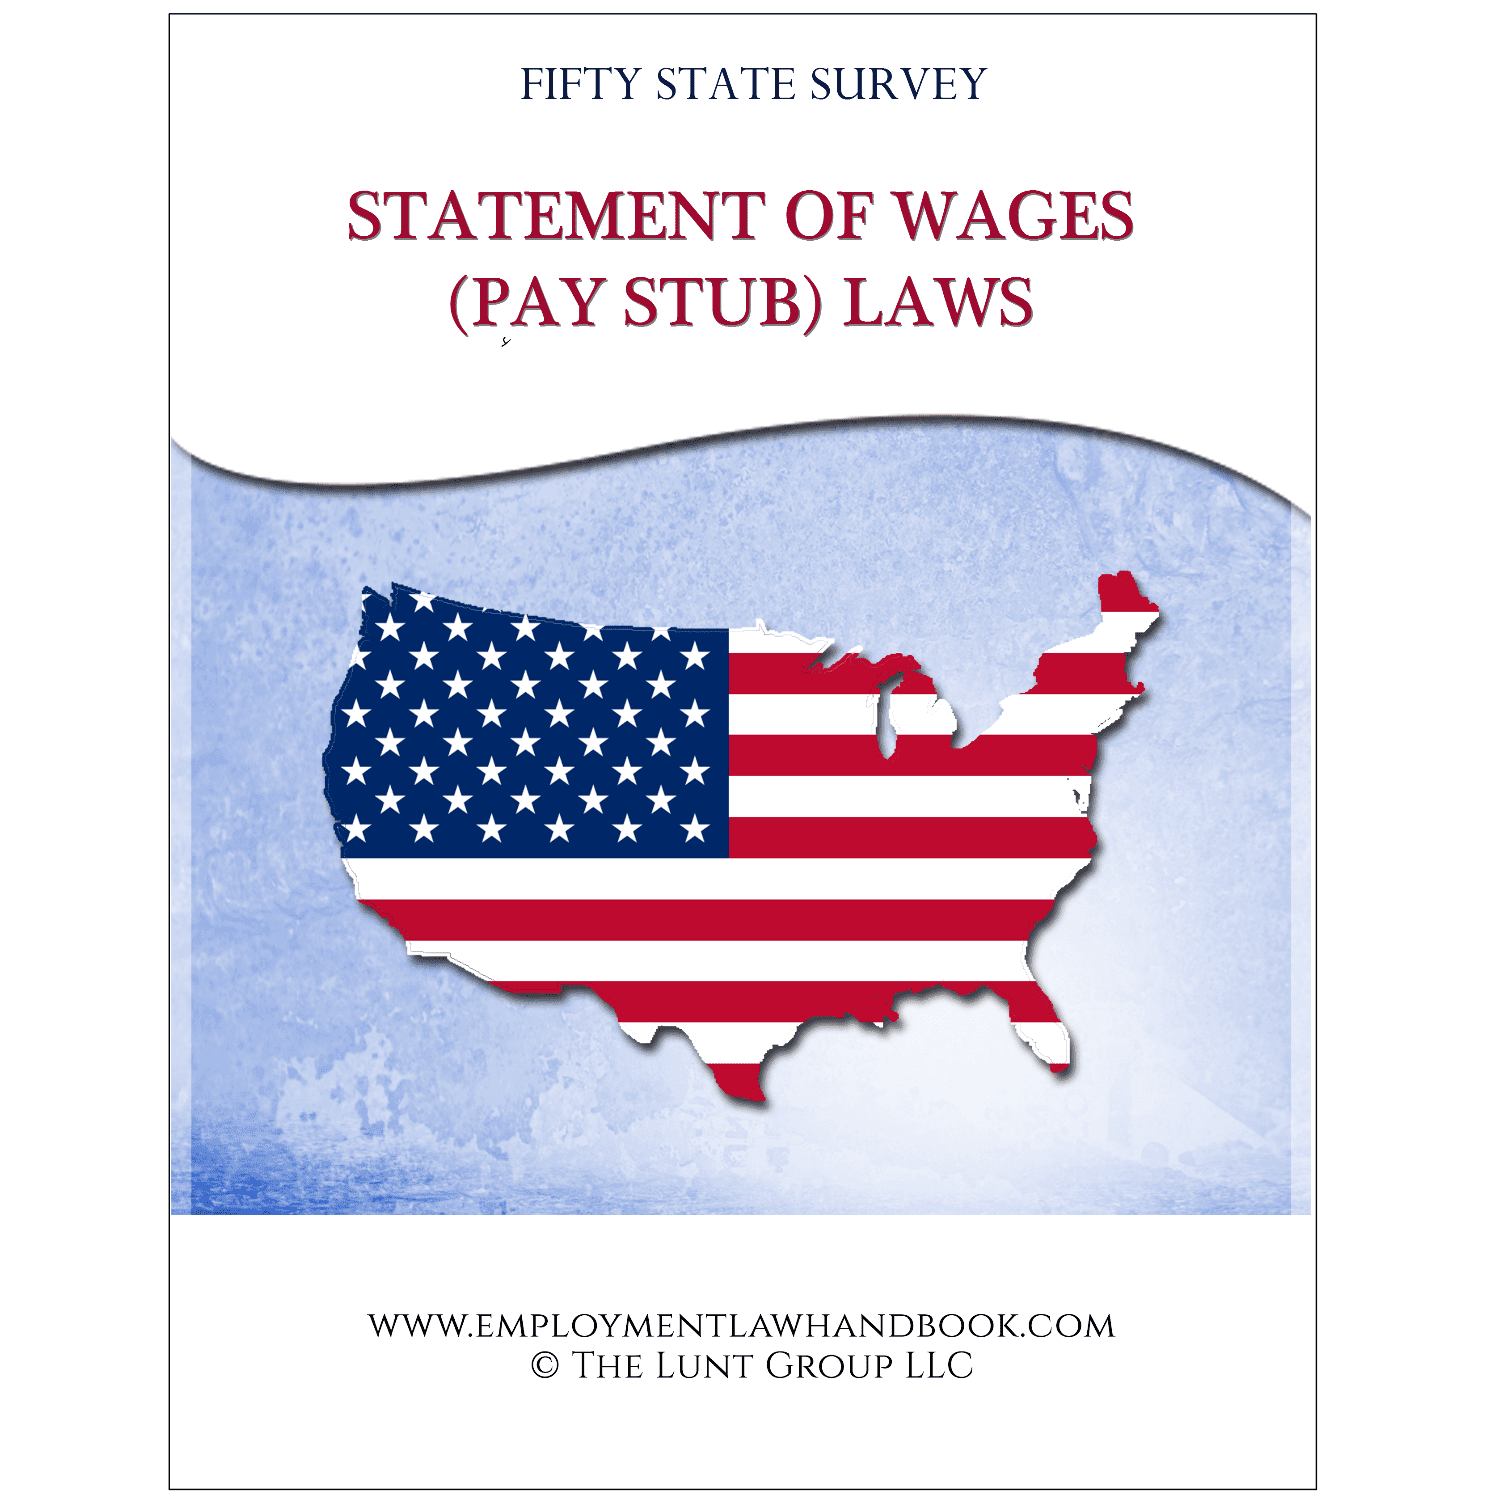 Statement of Wages Laws - Portrait_sq